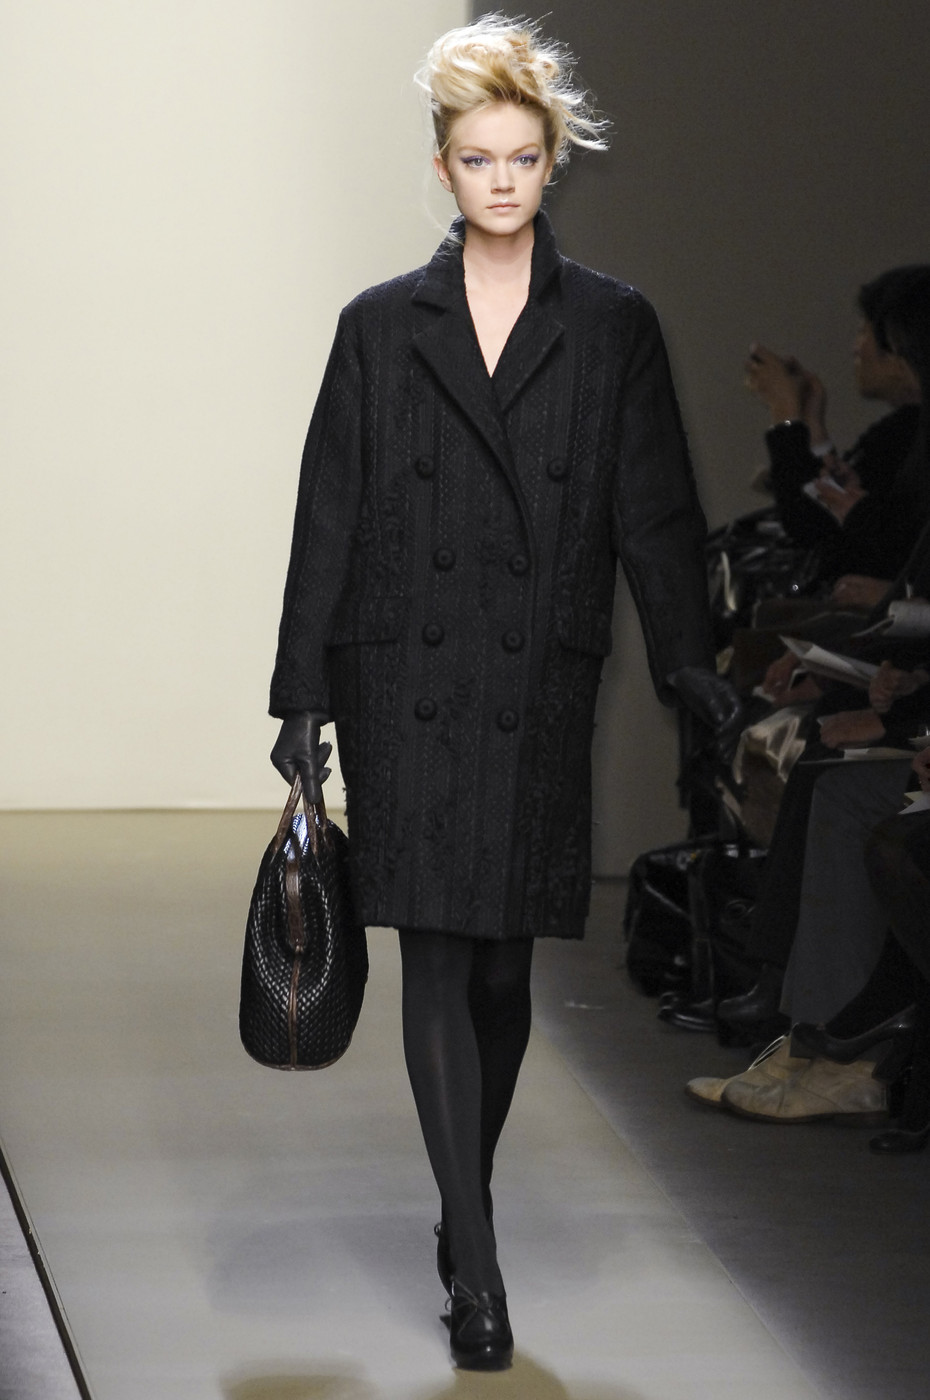 via fashioned by love | bottega vneta fall/winter 2008